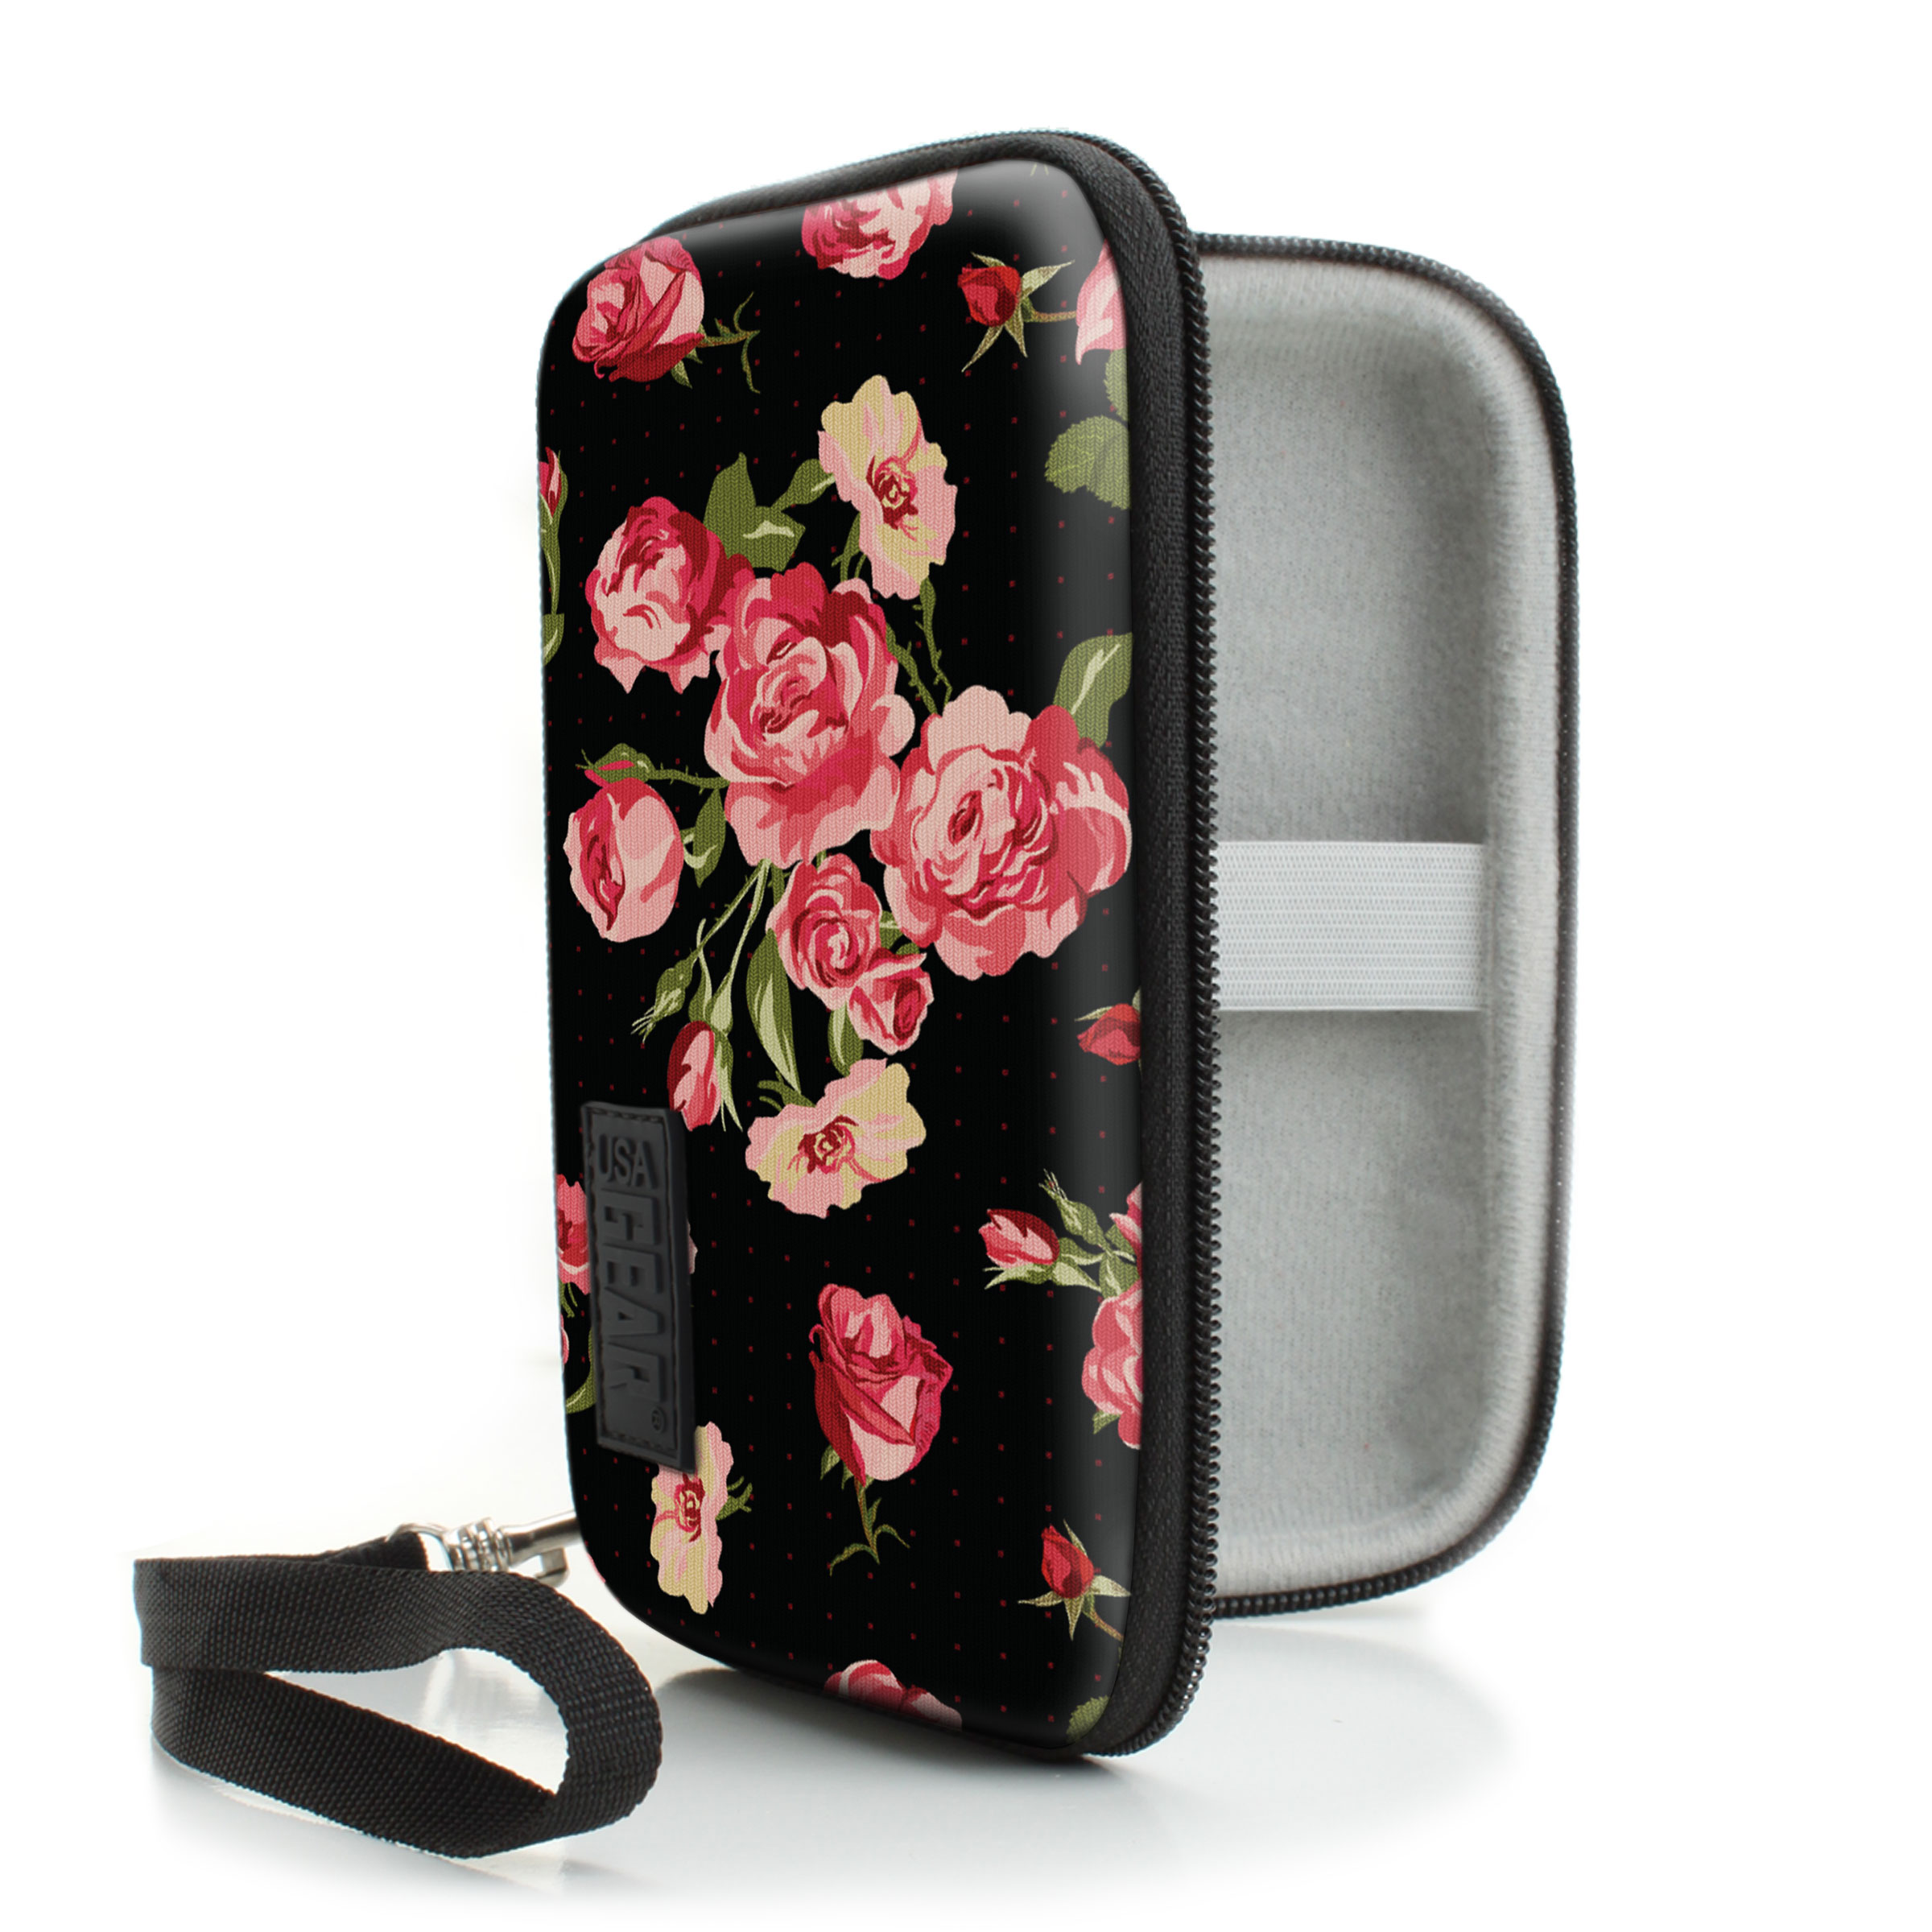 Portable Wi-Fi Mobile Hotspot Carrying Case by USA Gear with Detachable Security Wrist Strap 5